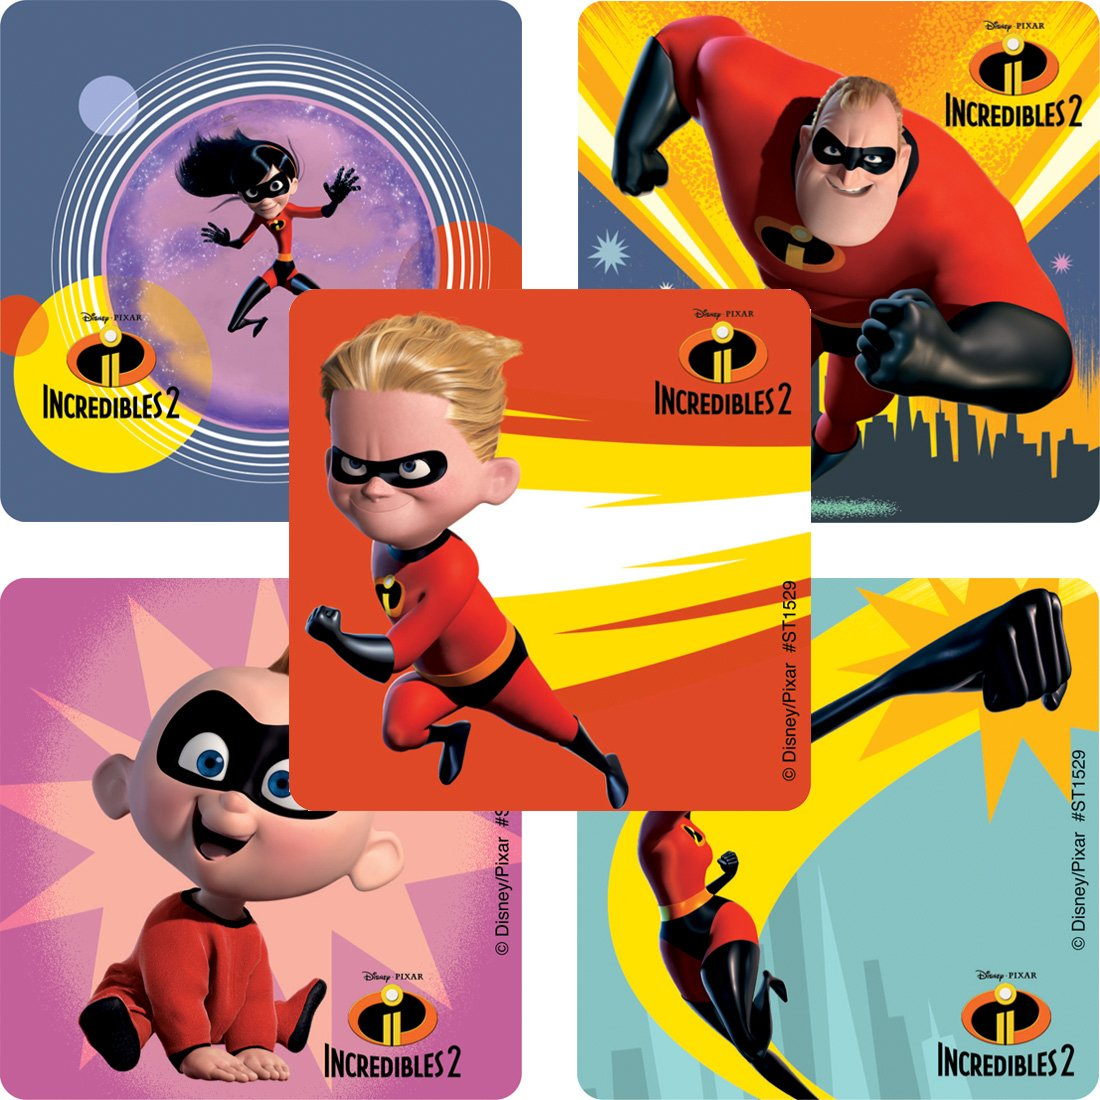 Incredibles 2 Movie stickers - Prizes and Giveaways - 100 per pack